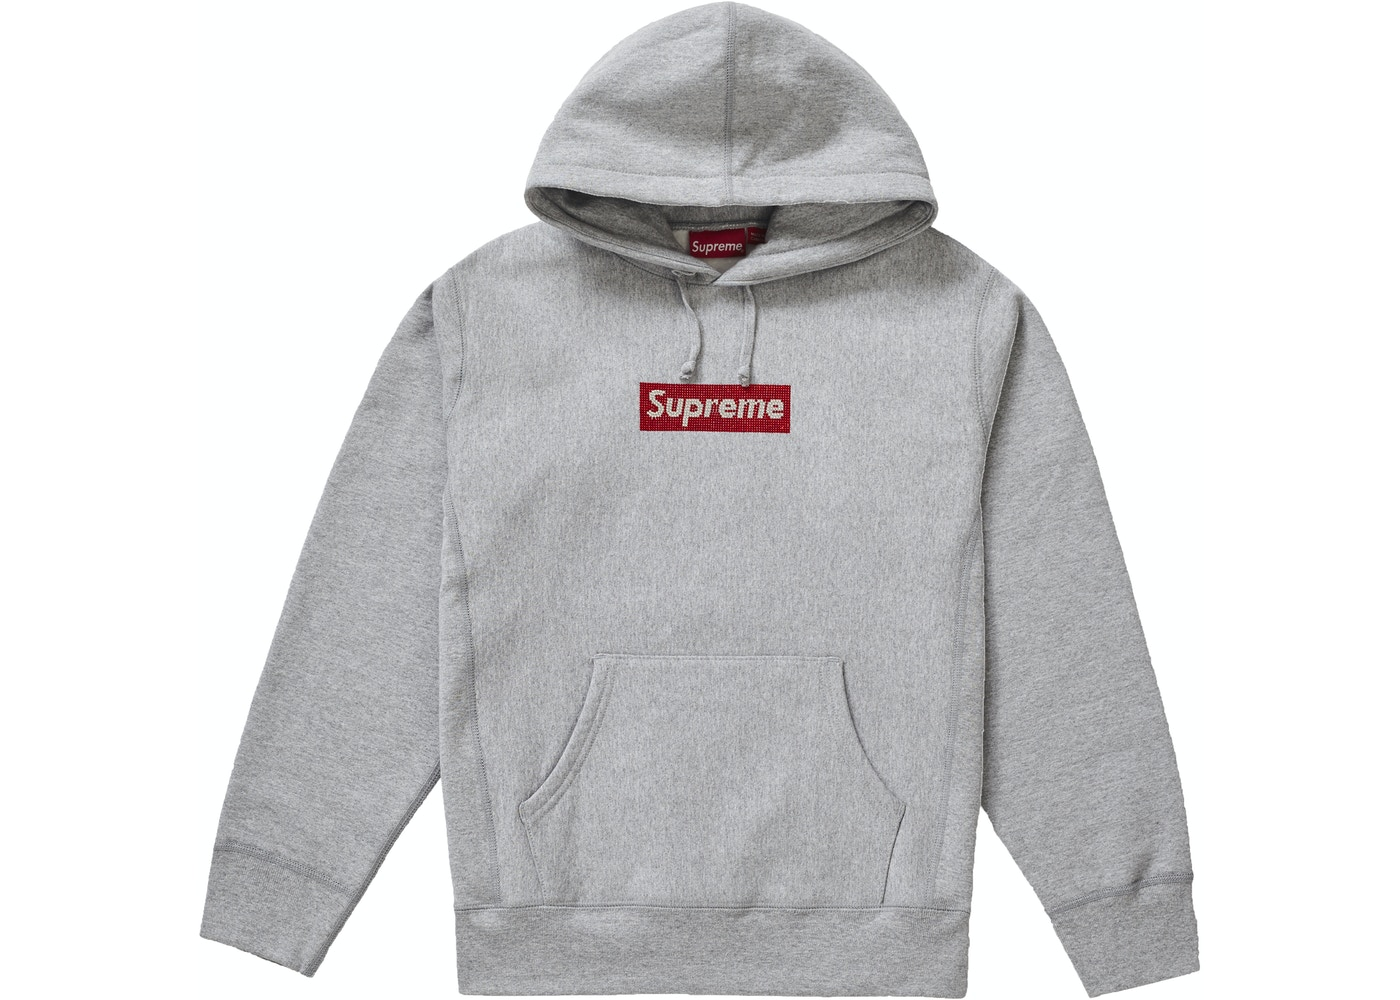 826ad909 Supreme Swarovski Box Logo Hooded Sweatshirt Heather Grey - SS19